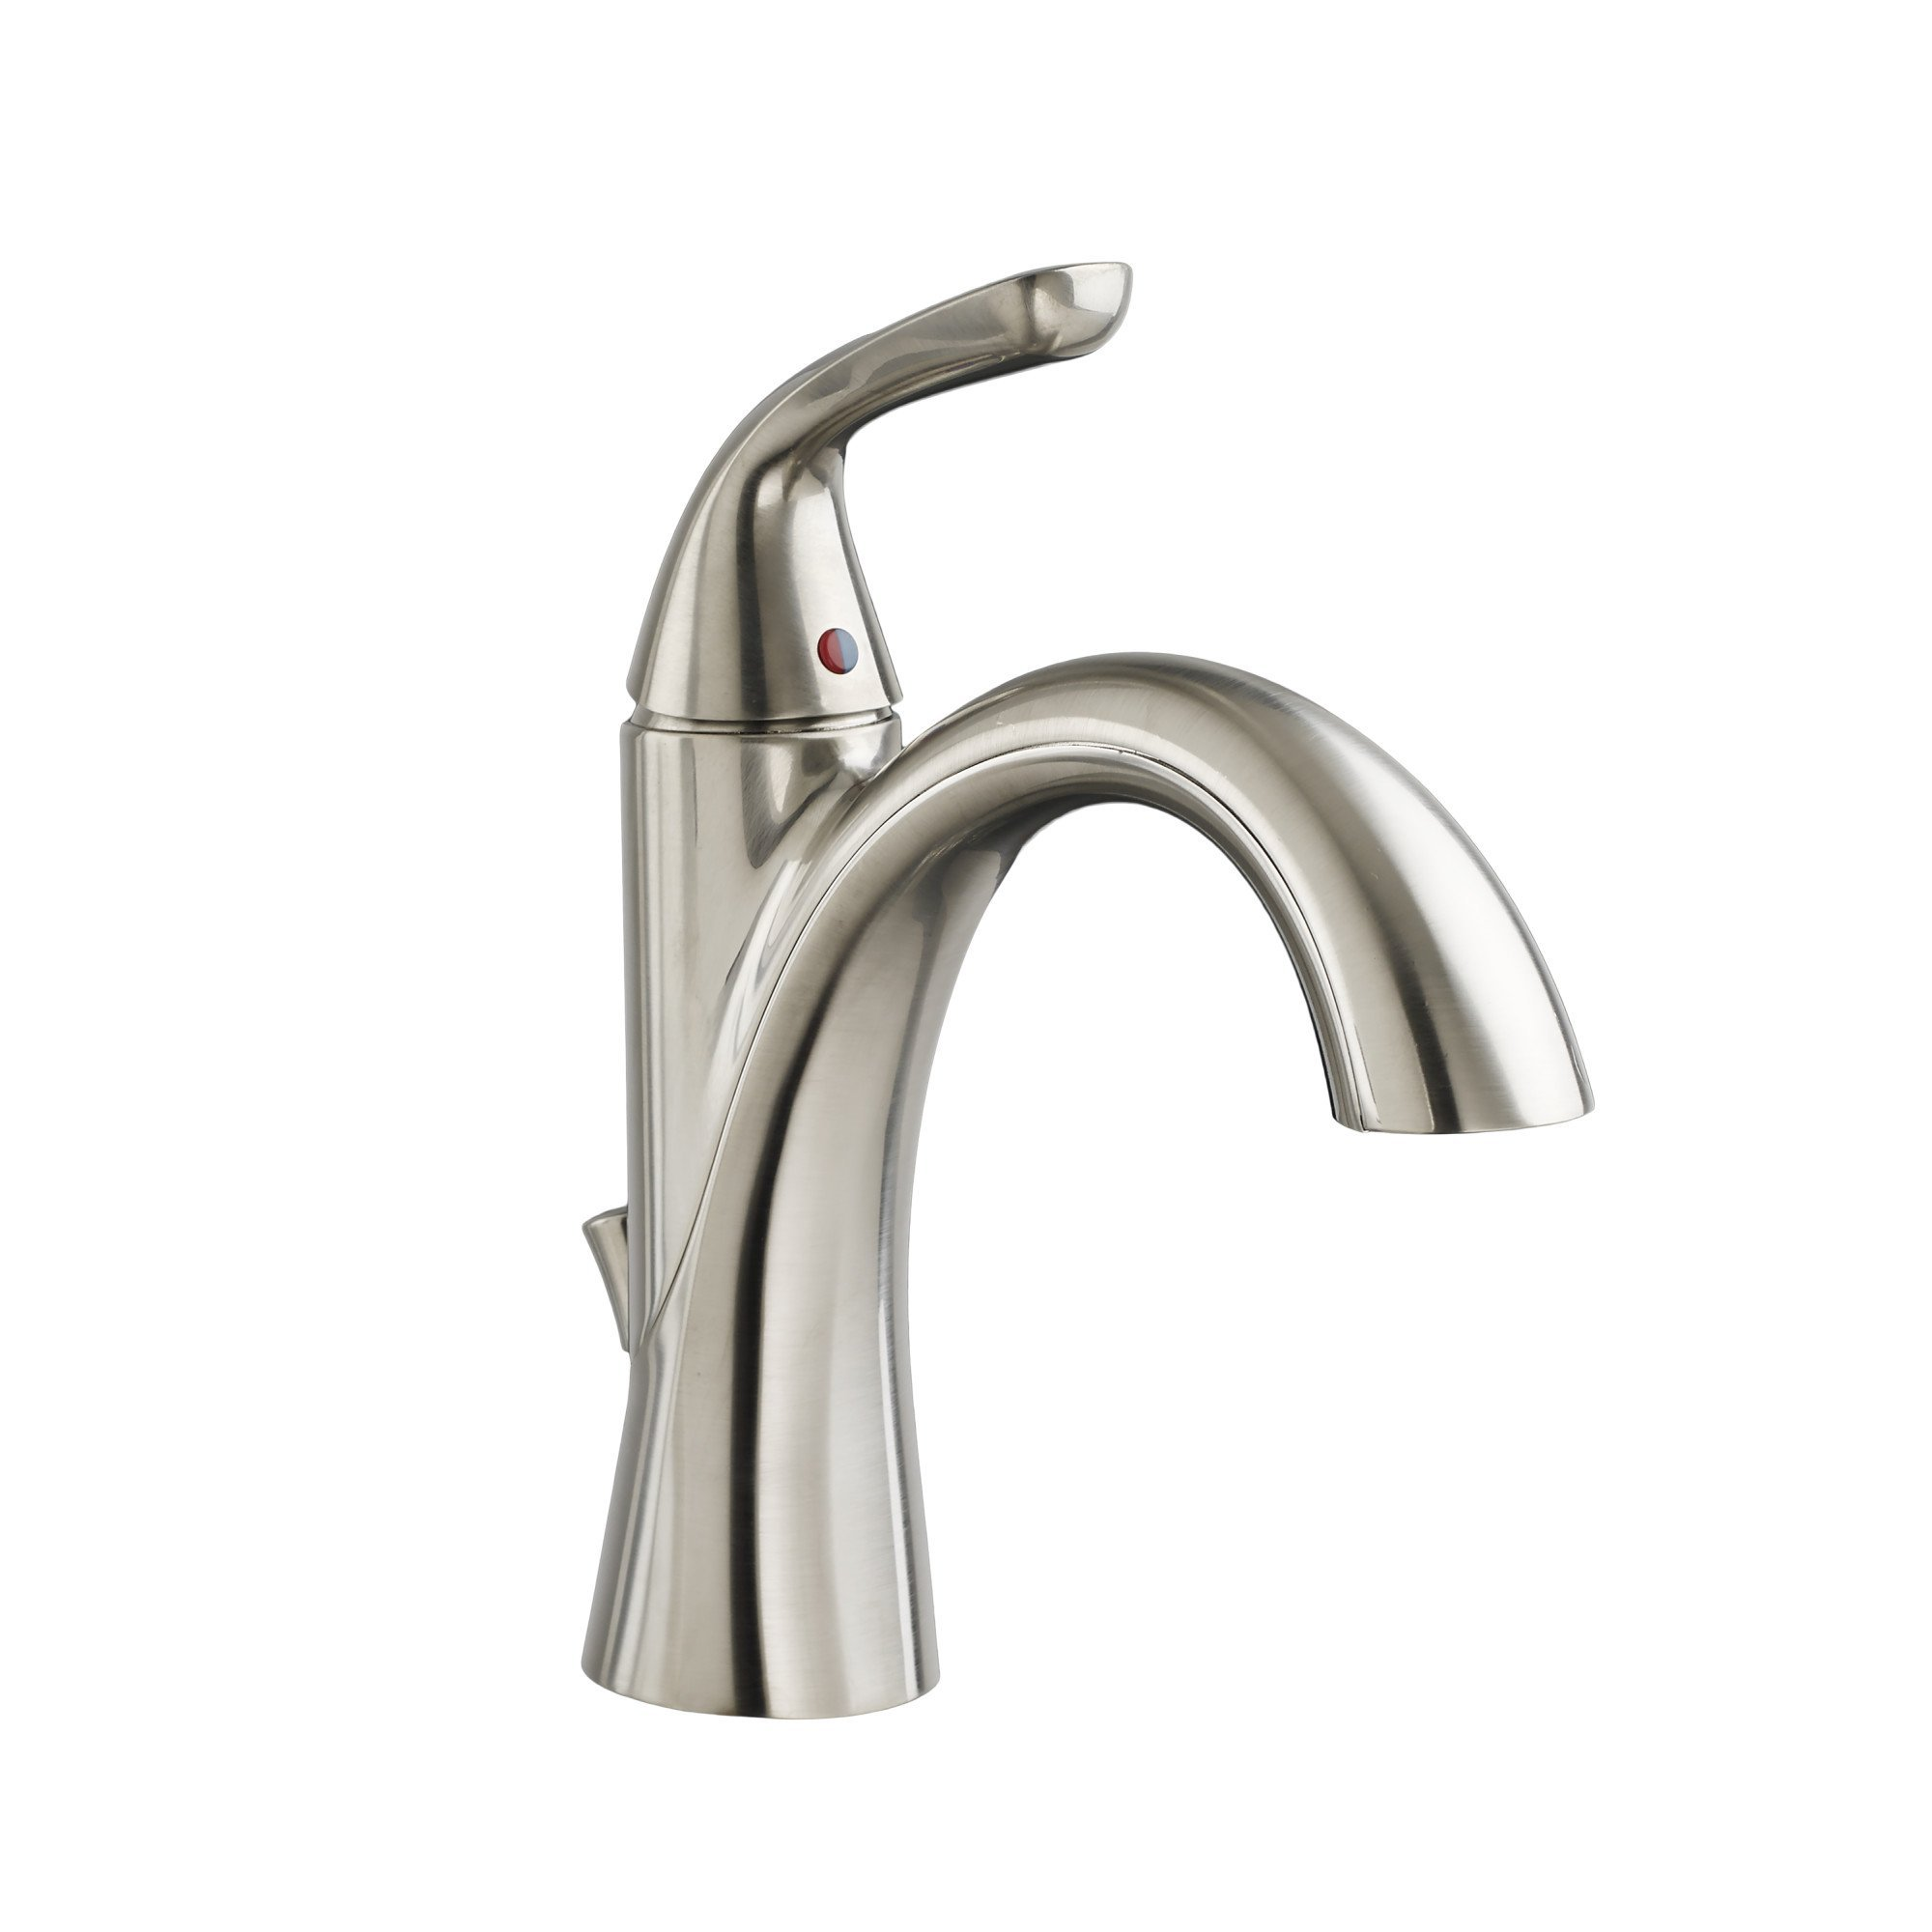 American Standard 7186101.295 Fluent Single Handle Bathroom Faucet with Speed Connect Drain, Satin Nickel by American Standard